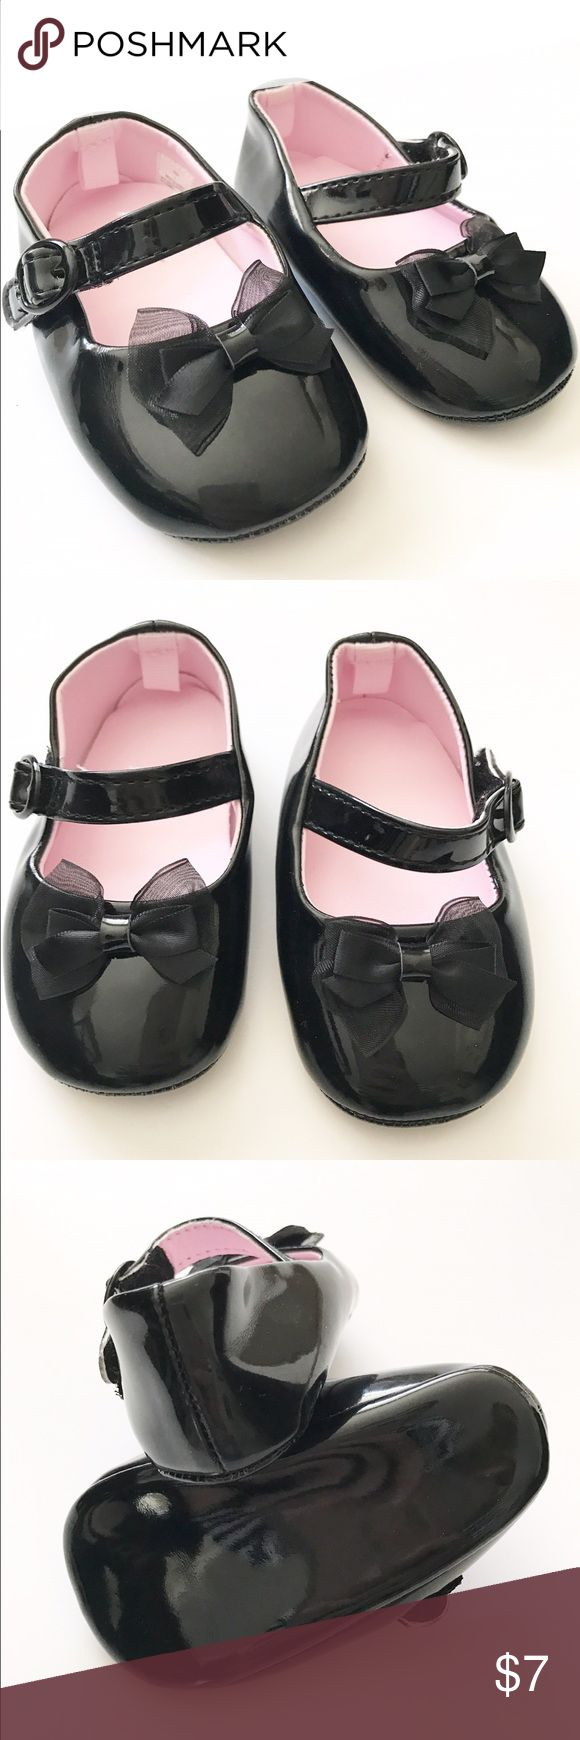 Black patent leather maryjane shoes Great condition. Bows on the toes and side velcro closure. Shoes